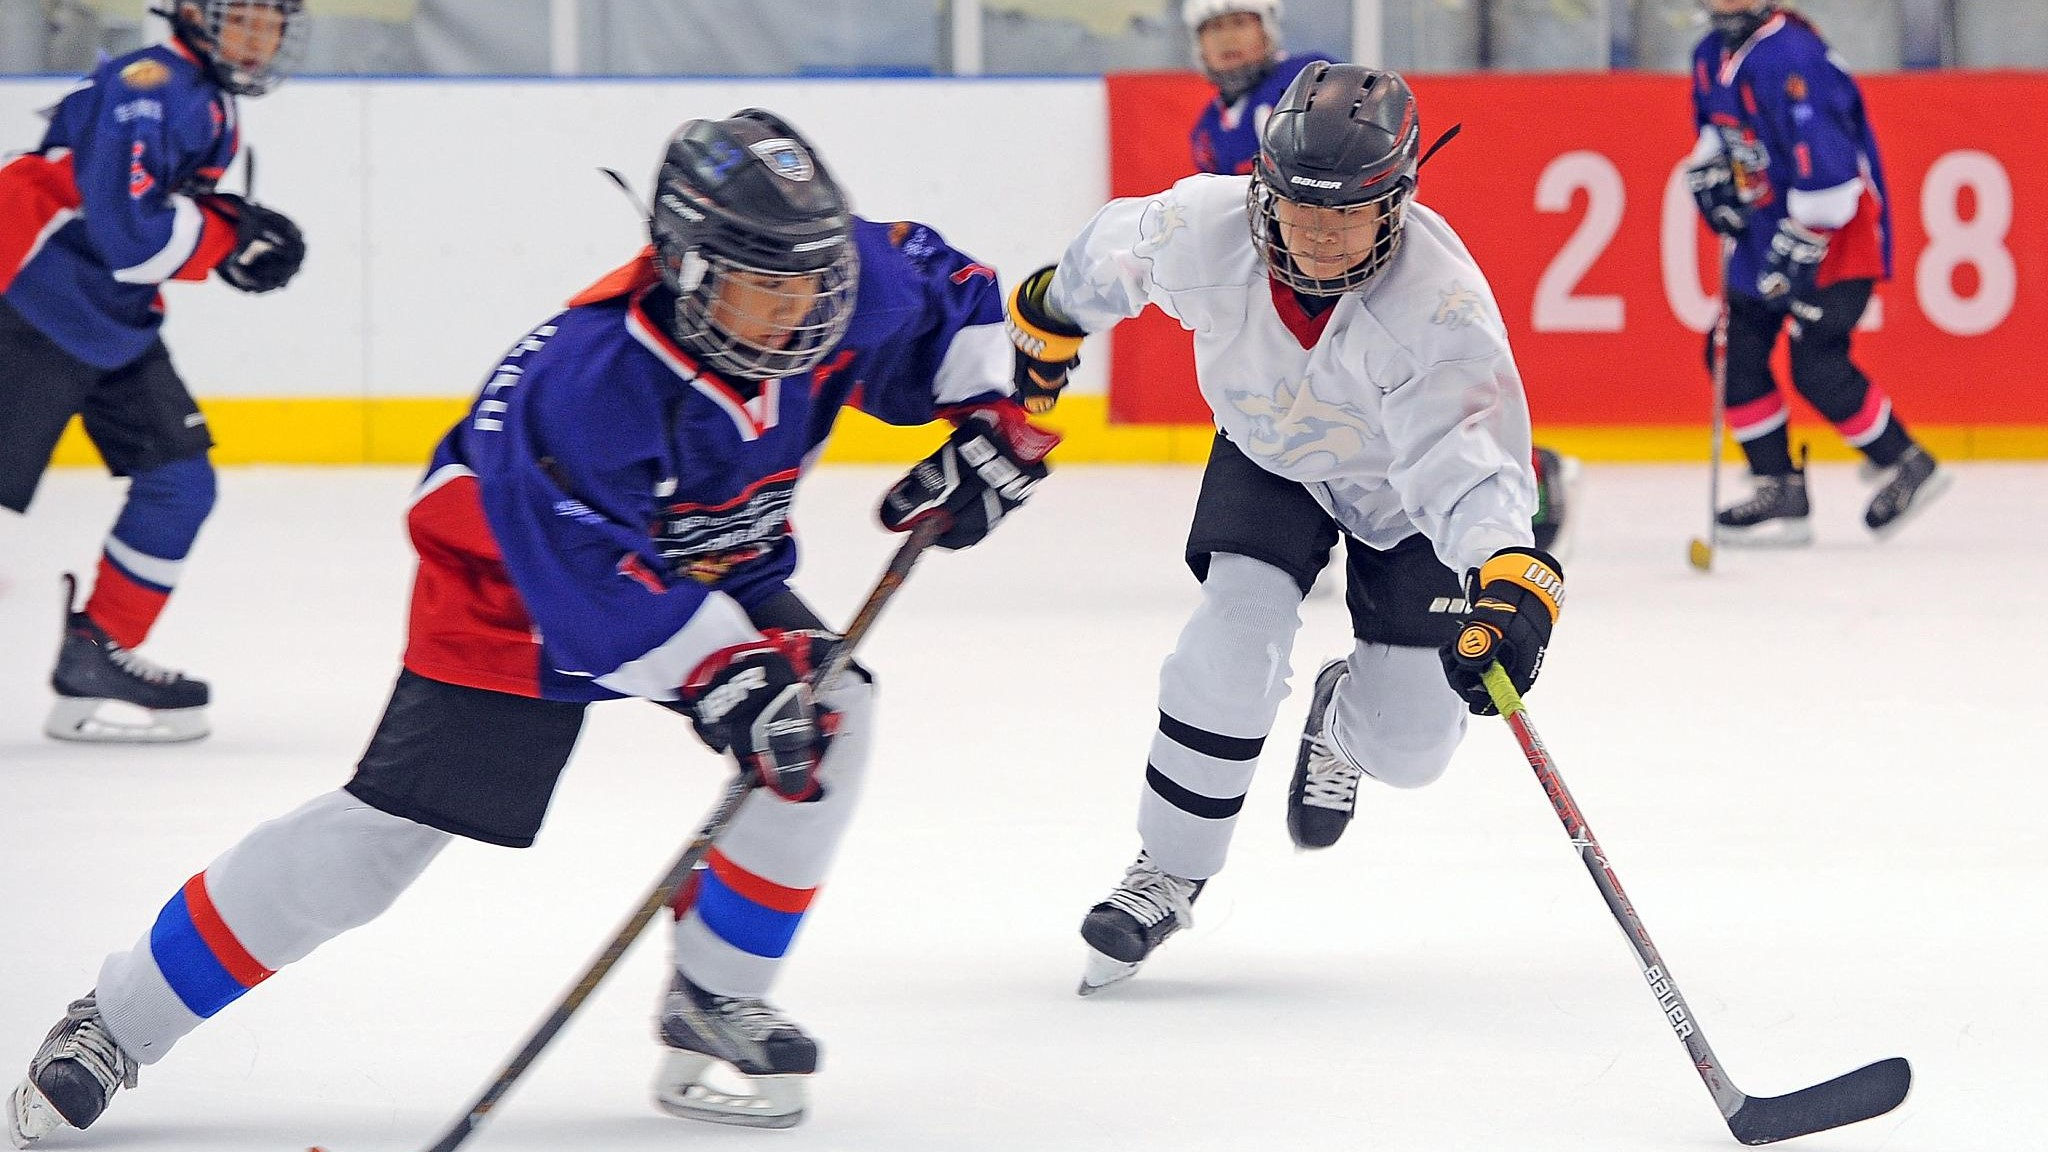 China To Launch Ice Hockey Tournaments For Teenagers In October Cgtn